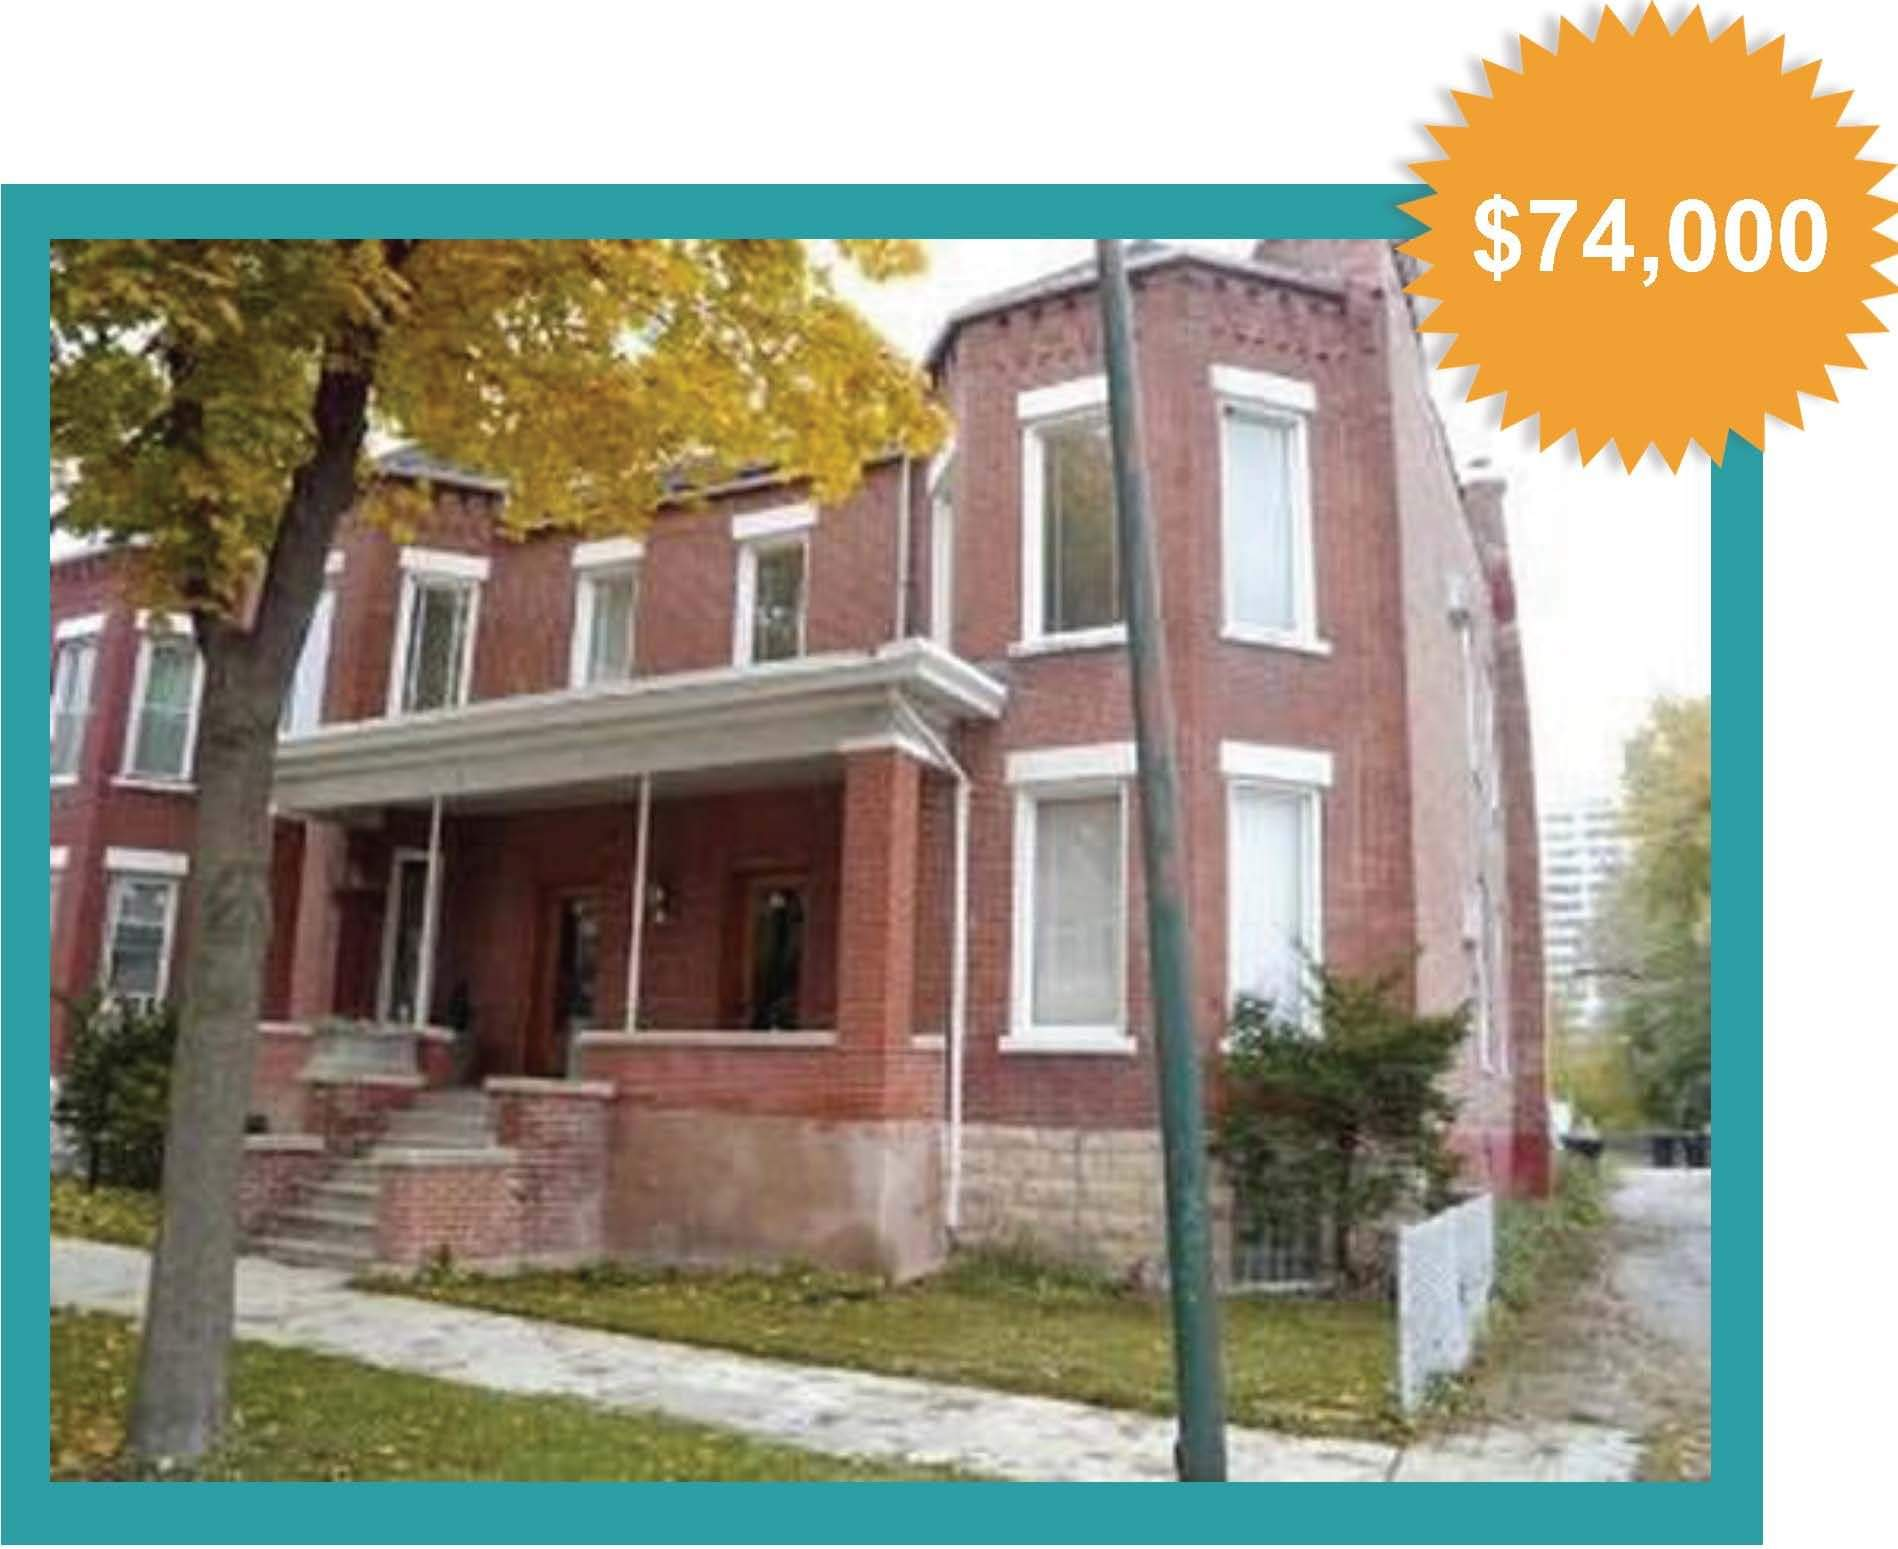 Chicago Buy to Let Investment Property 1